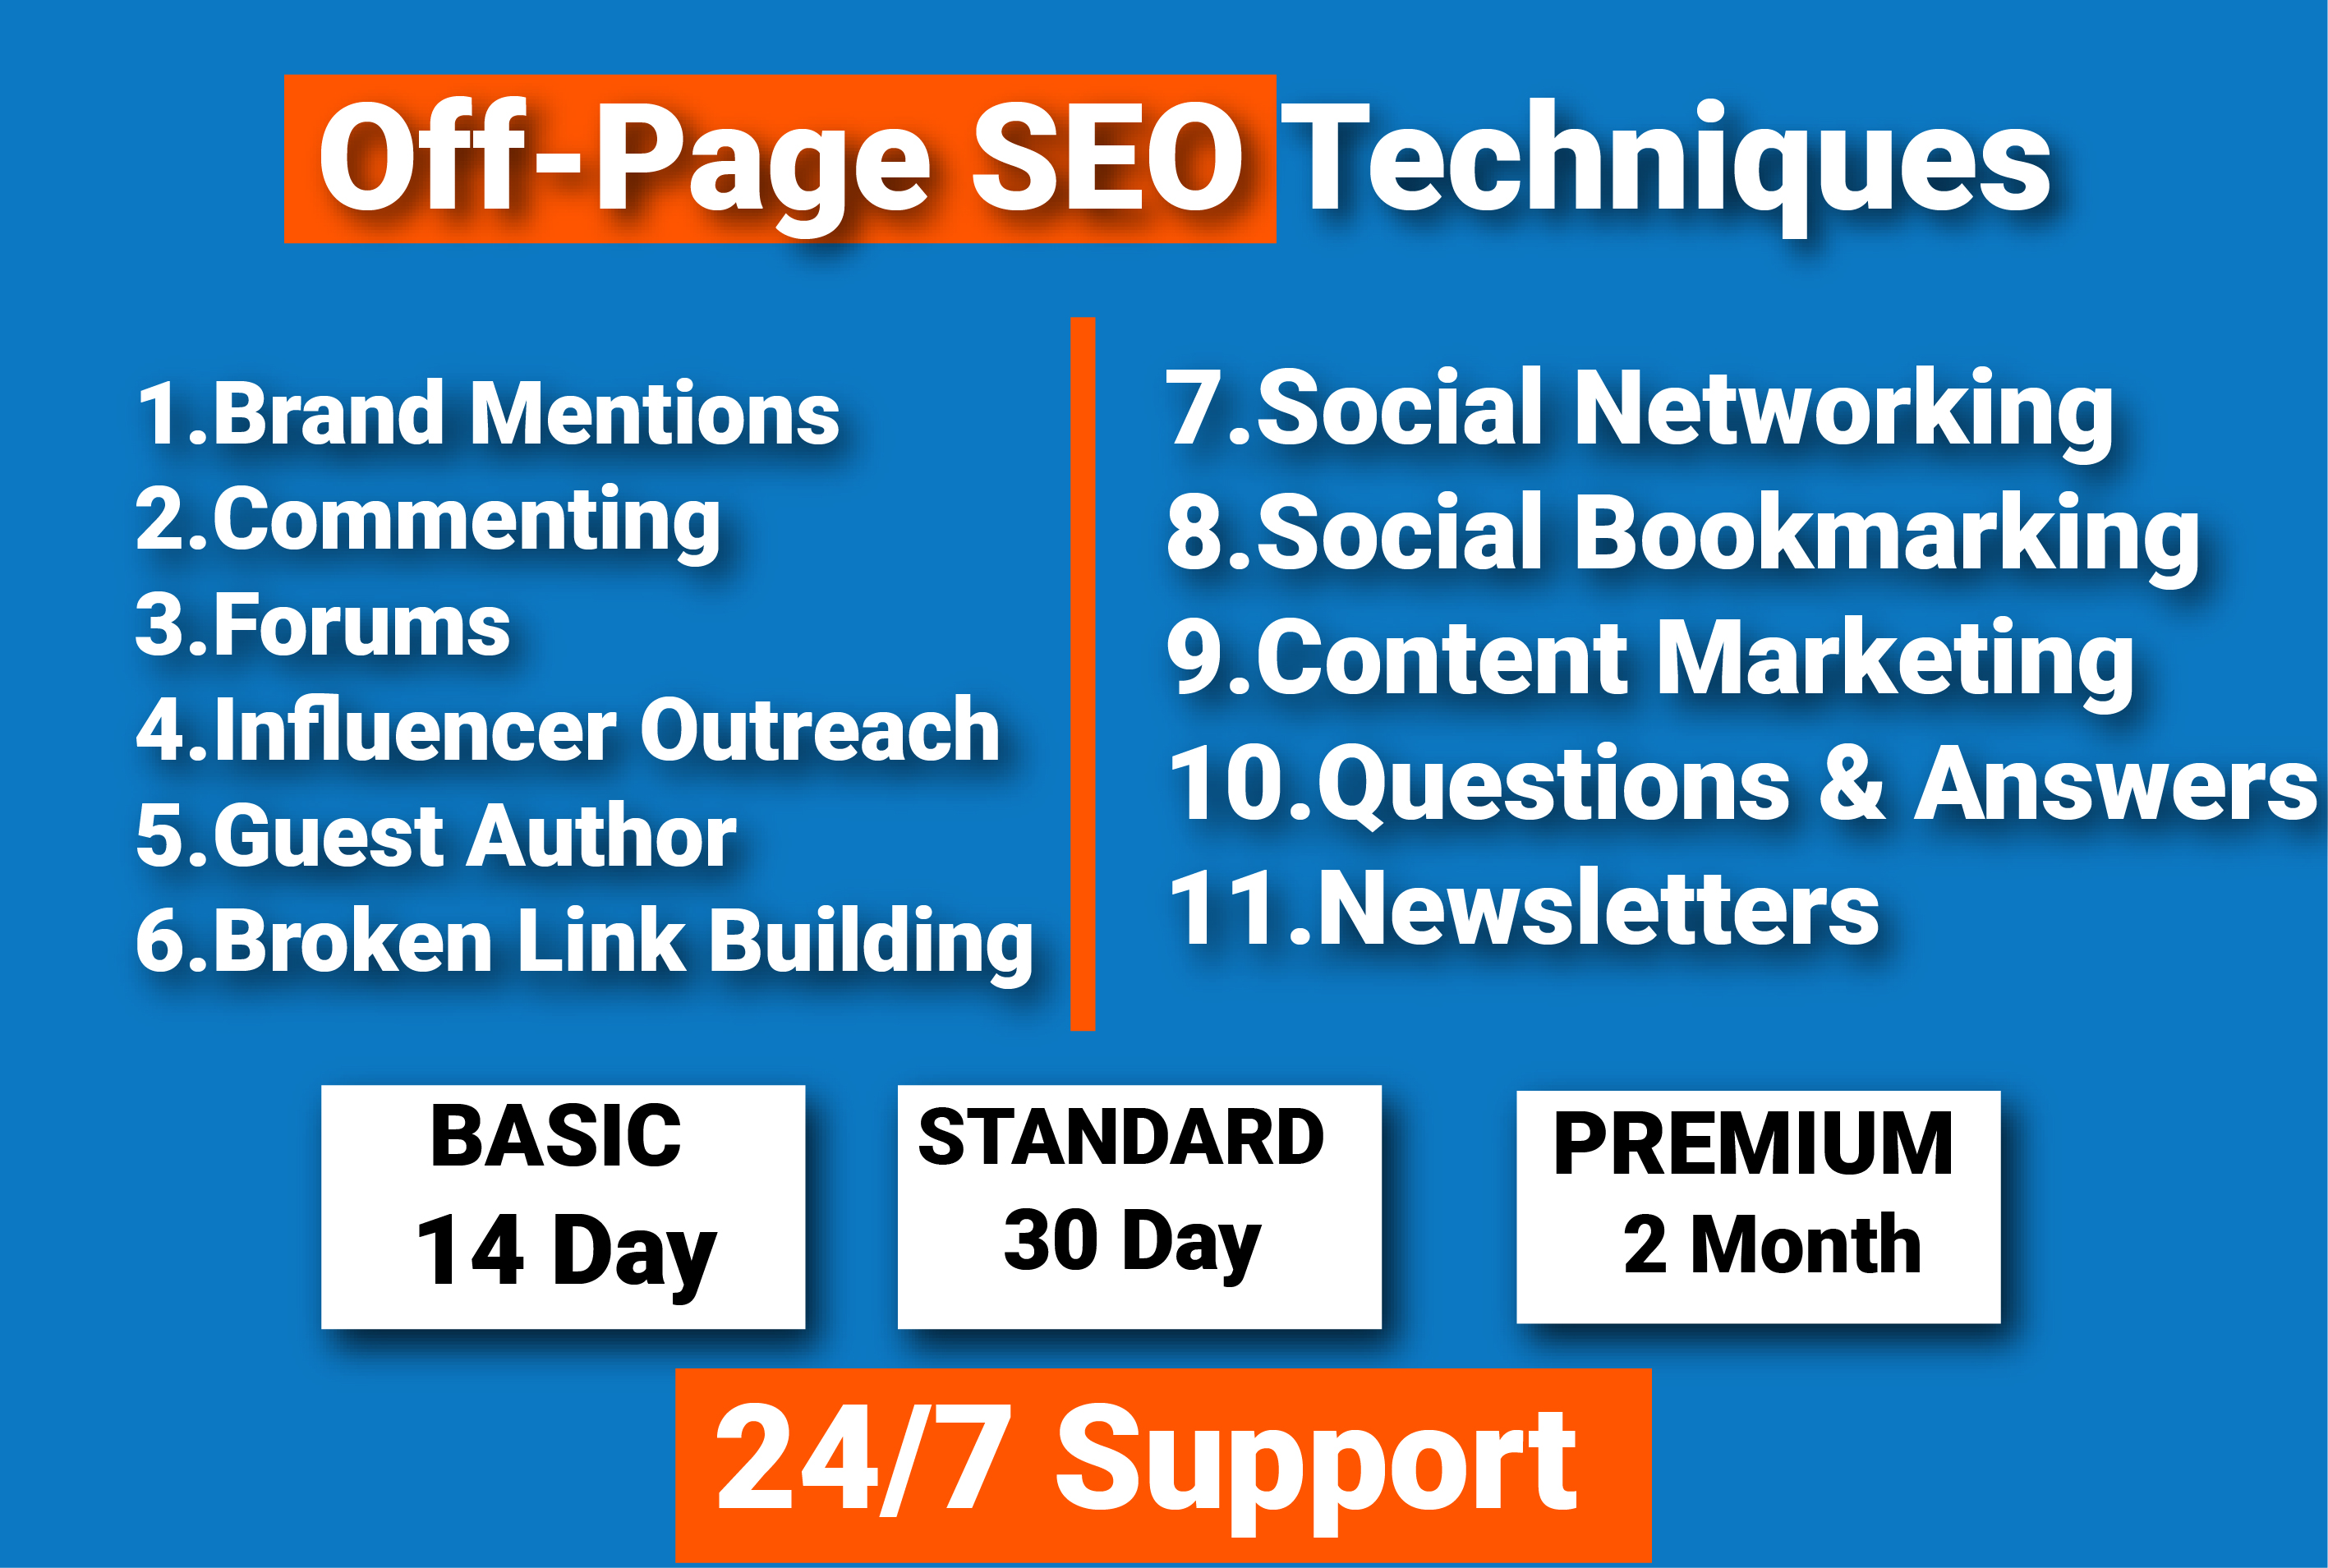 I will build 11 smarts off page SEO techniques you need to use right now